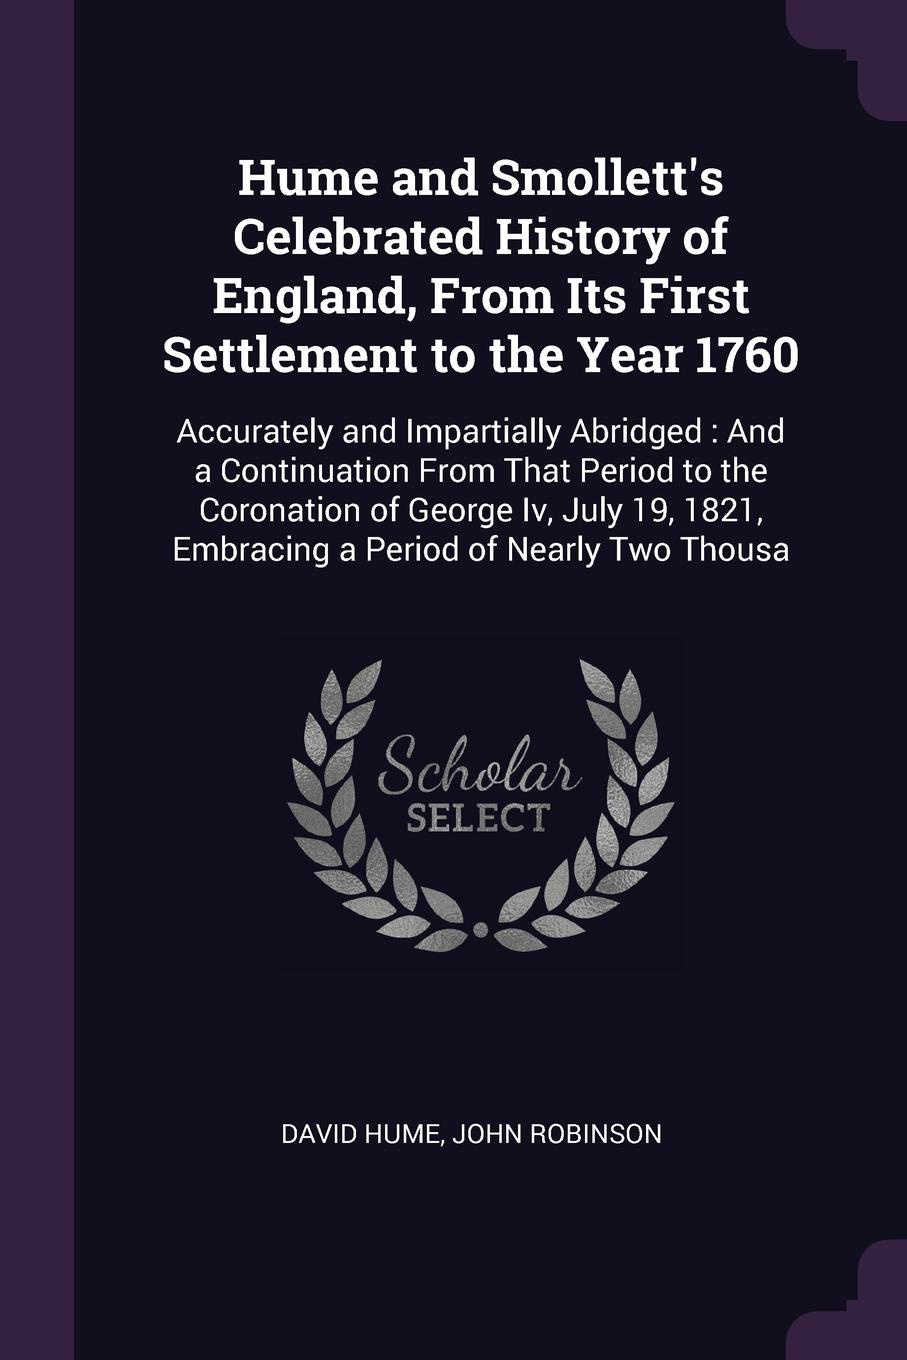 Hume and Smollett`s Celebrated History of England, From Its First Settlement to the Year 1760. Accurately and Impartially Abridged : And a Continuation From That Period to the Coronation of George Iv, July 19, 1821, Embracing a Period of Nearly Tw...